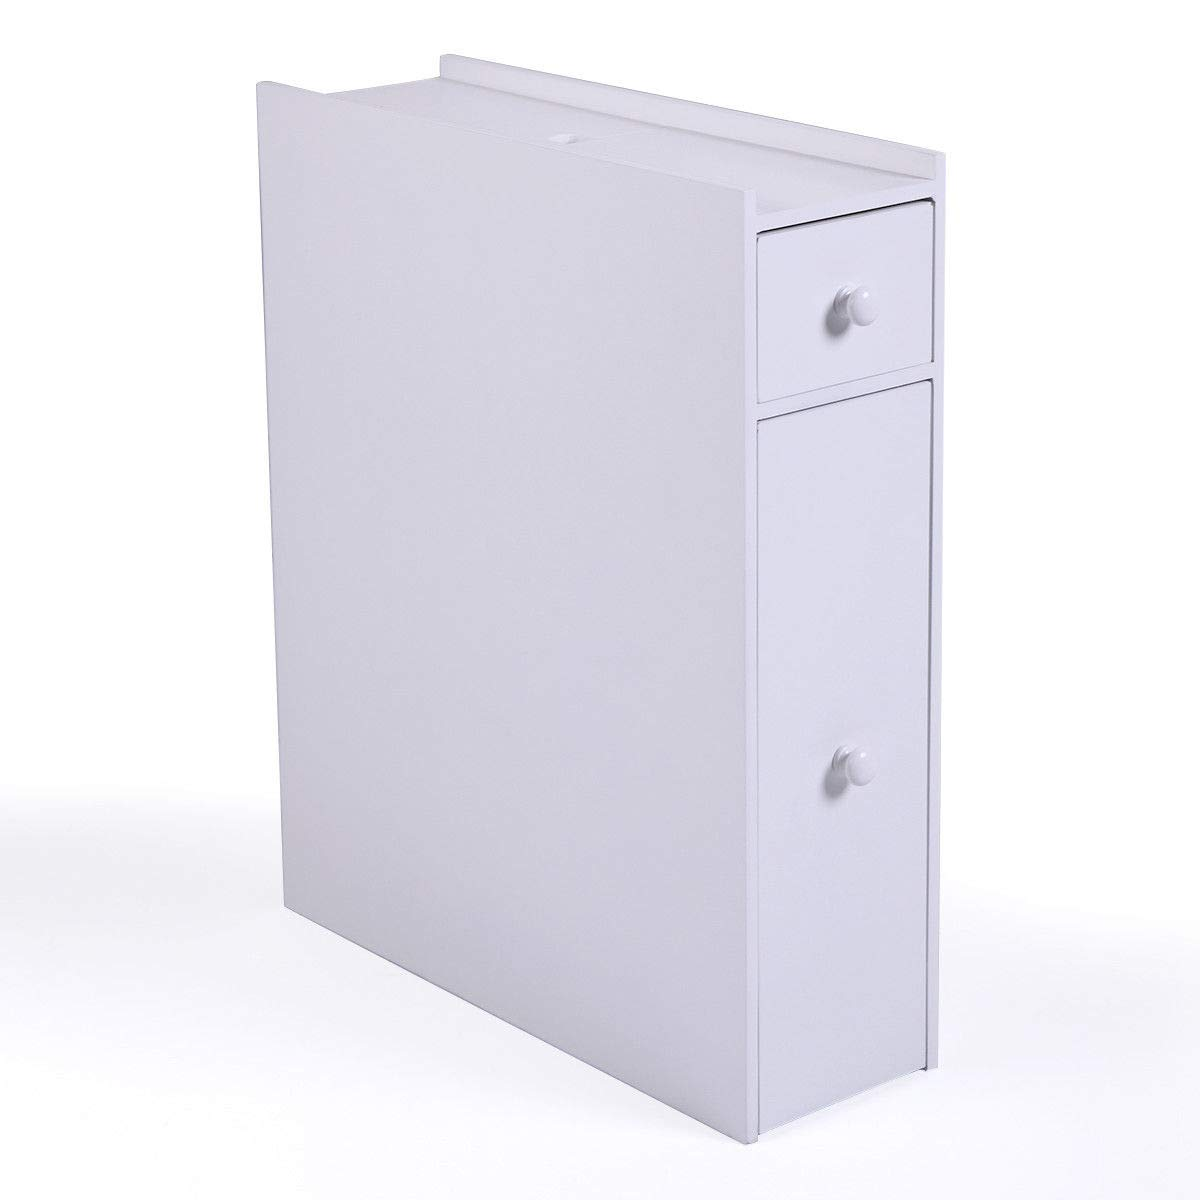 HPW White Slim Bathroom Storage Cupboard Thin Cabinet Unit 2 Drawers Wooden Floor Toilet Bath Washroom Organizer Free Standing Over The Door Shower Caddies Ample Storage Space Fully Assembled